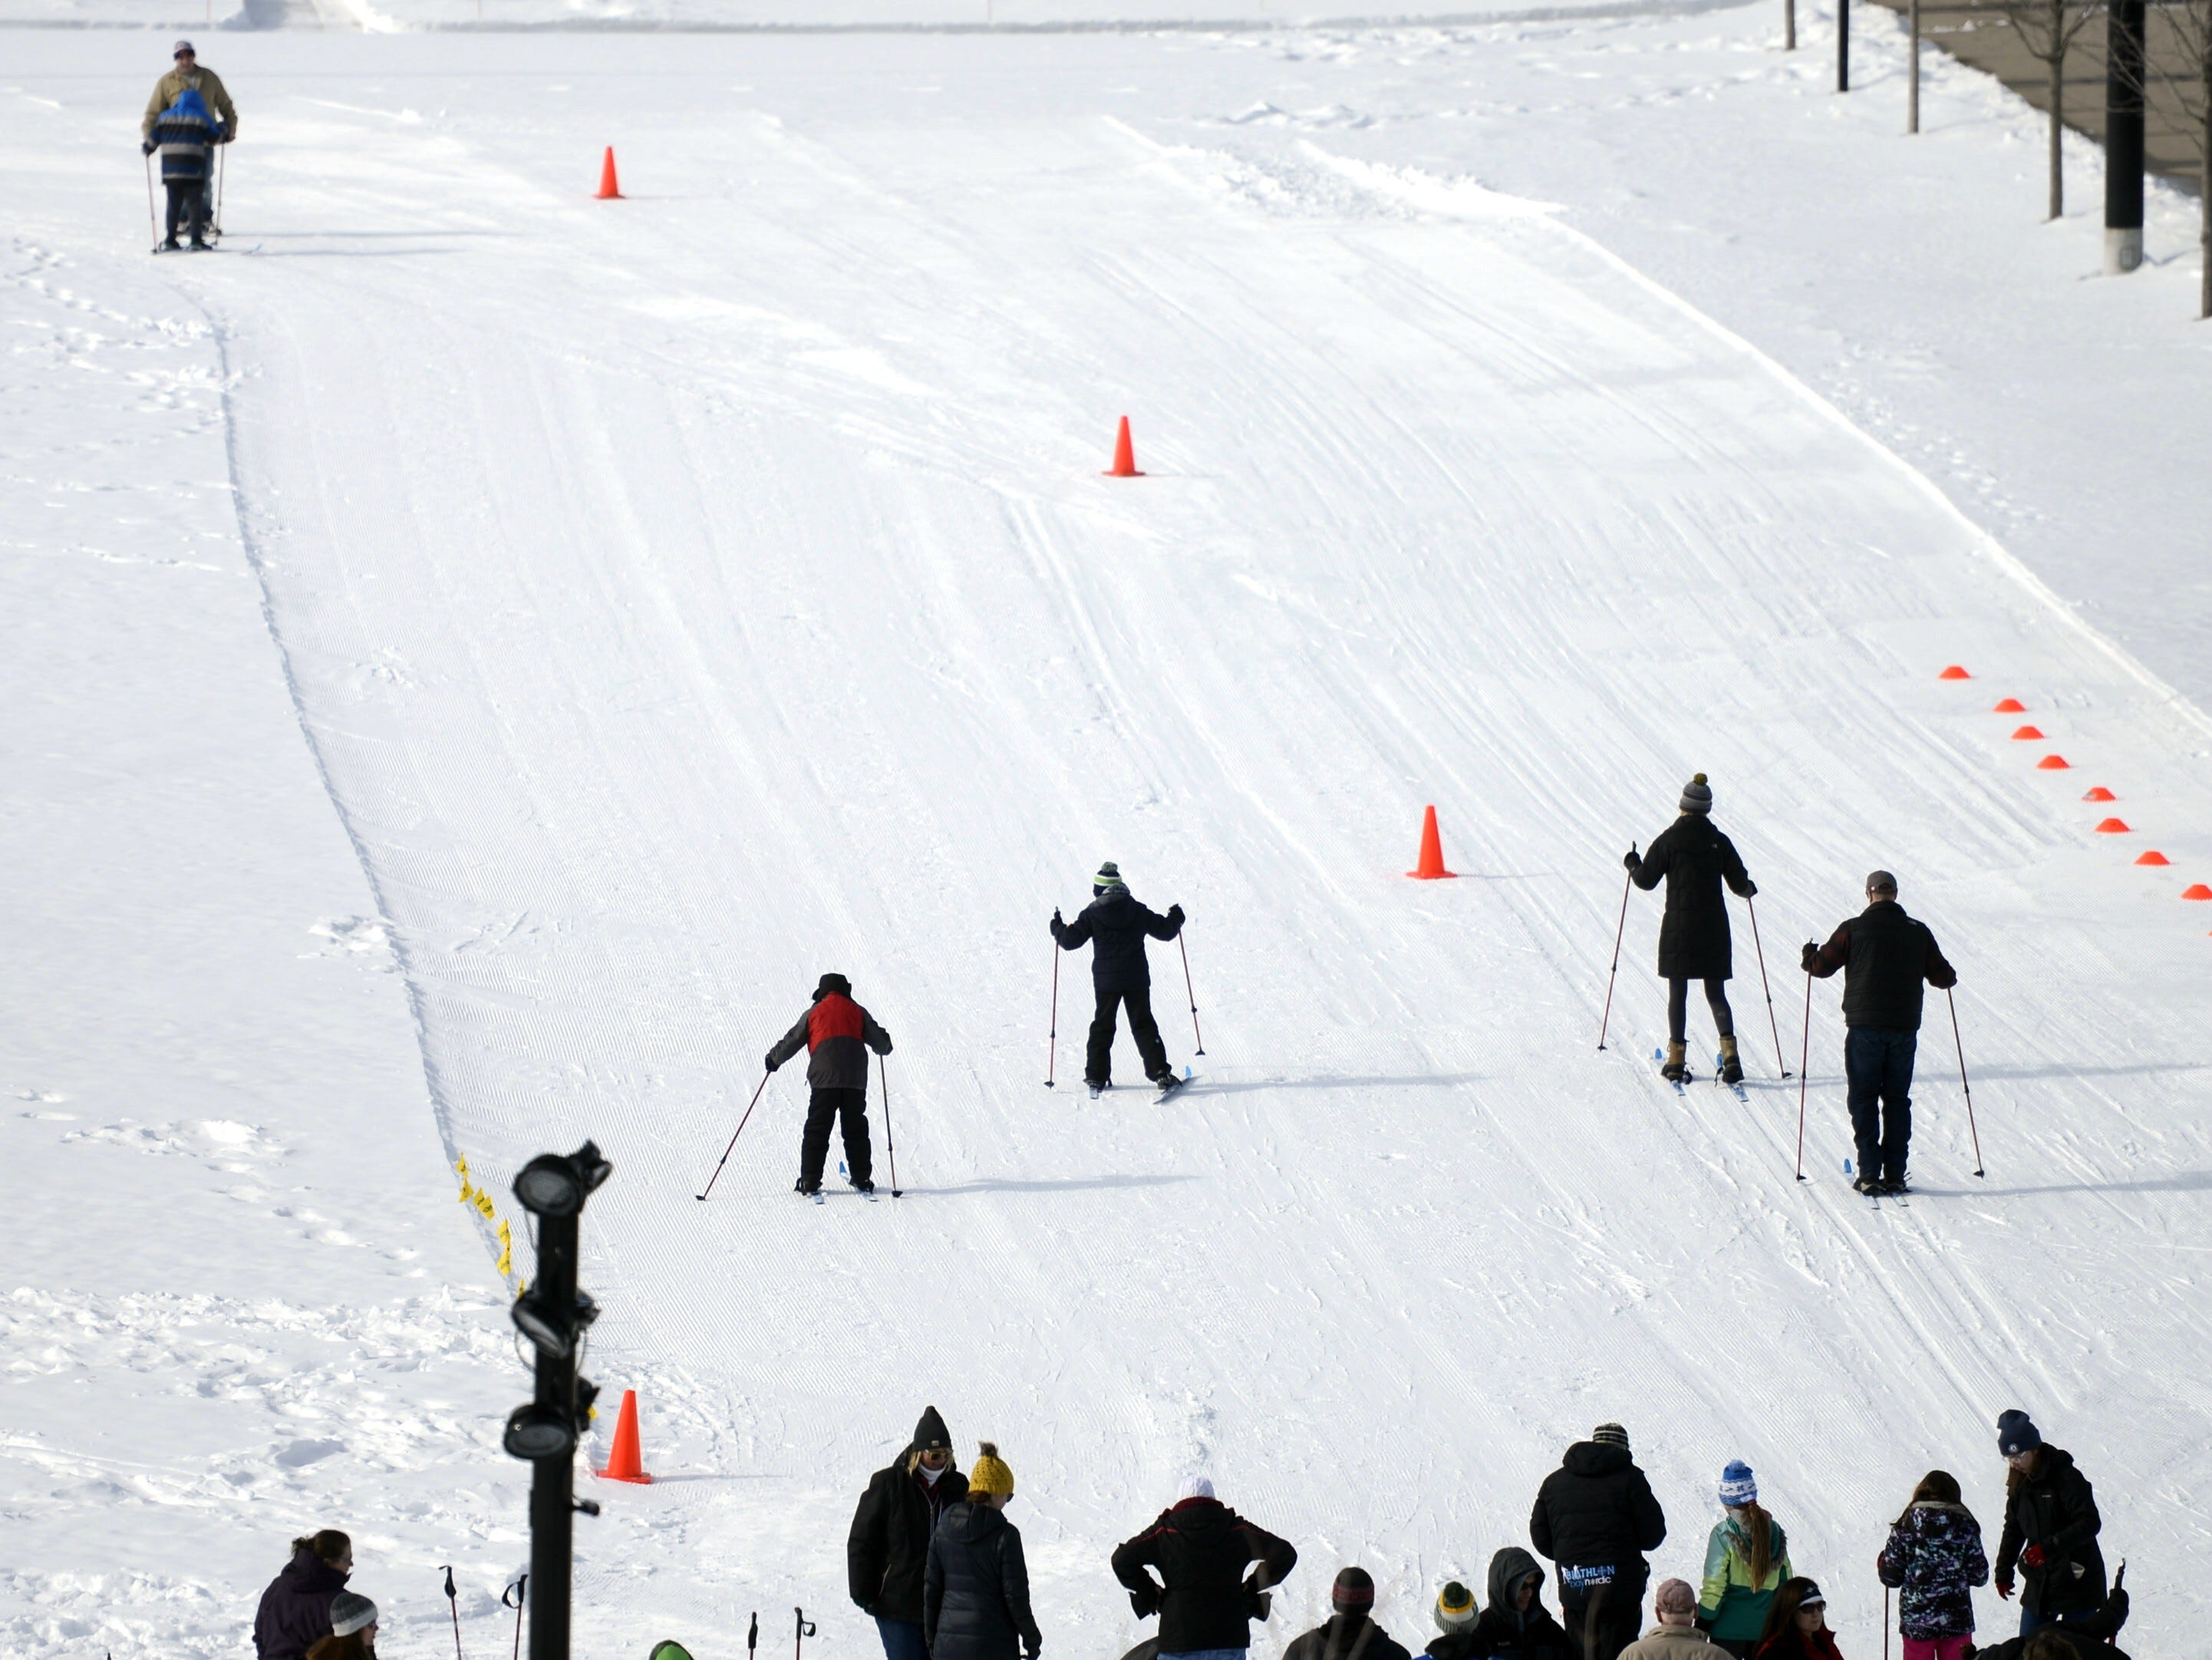 Cross country skiers take off during the Titletown Winter Games on Saturday, Feb. 16, 2019.